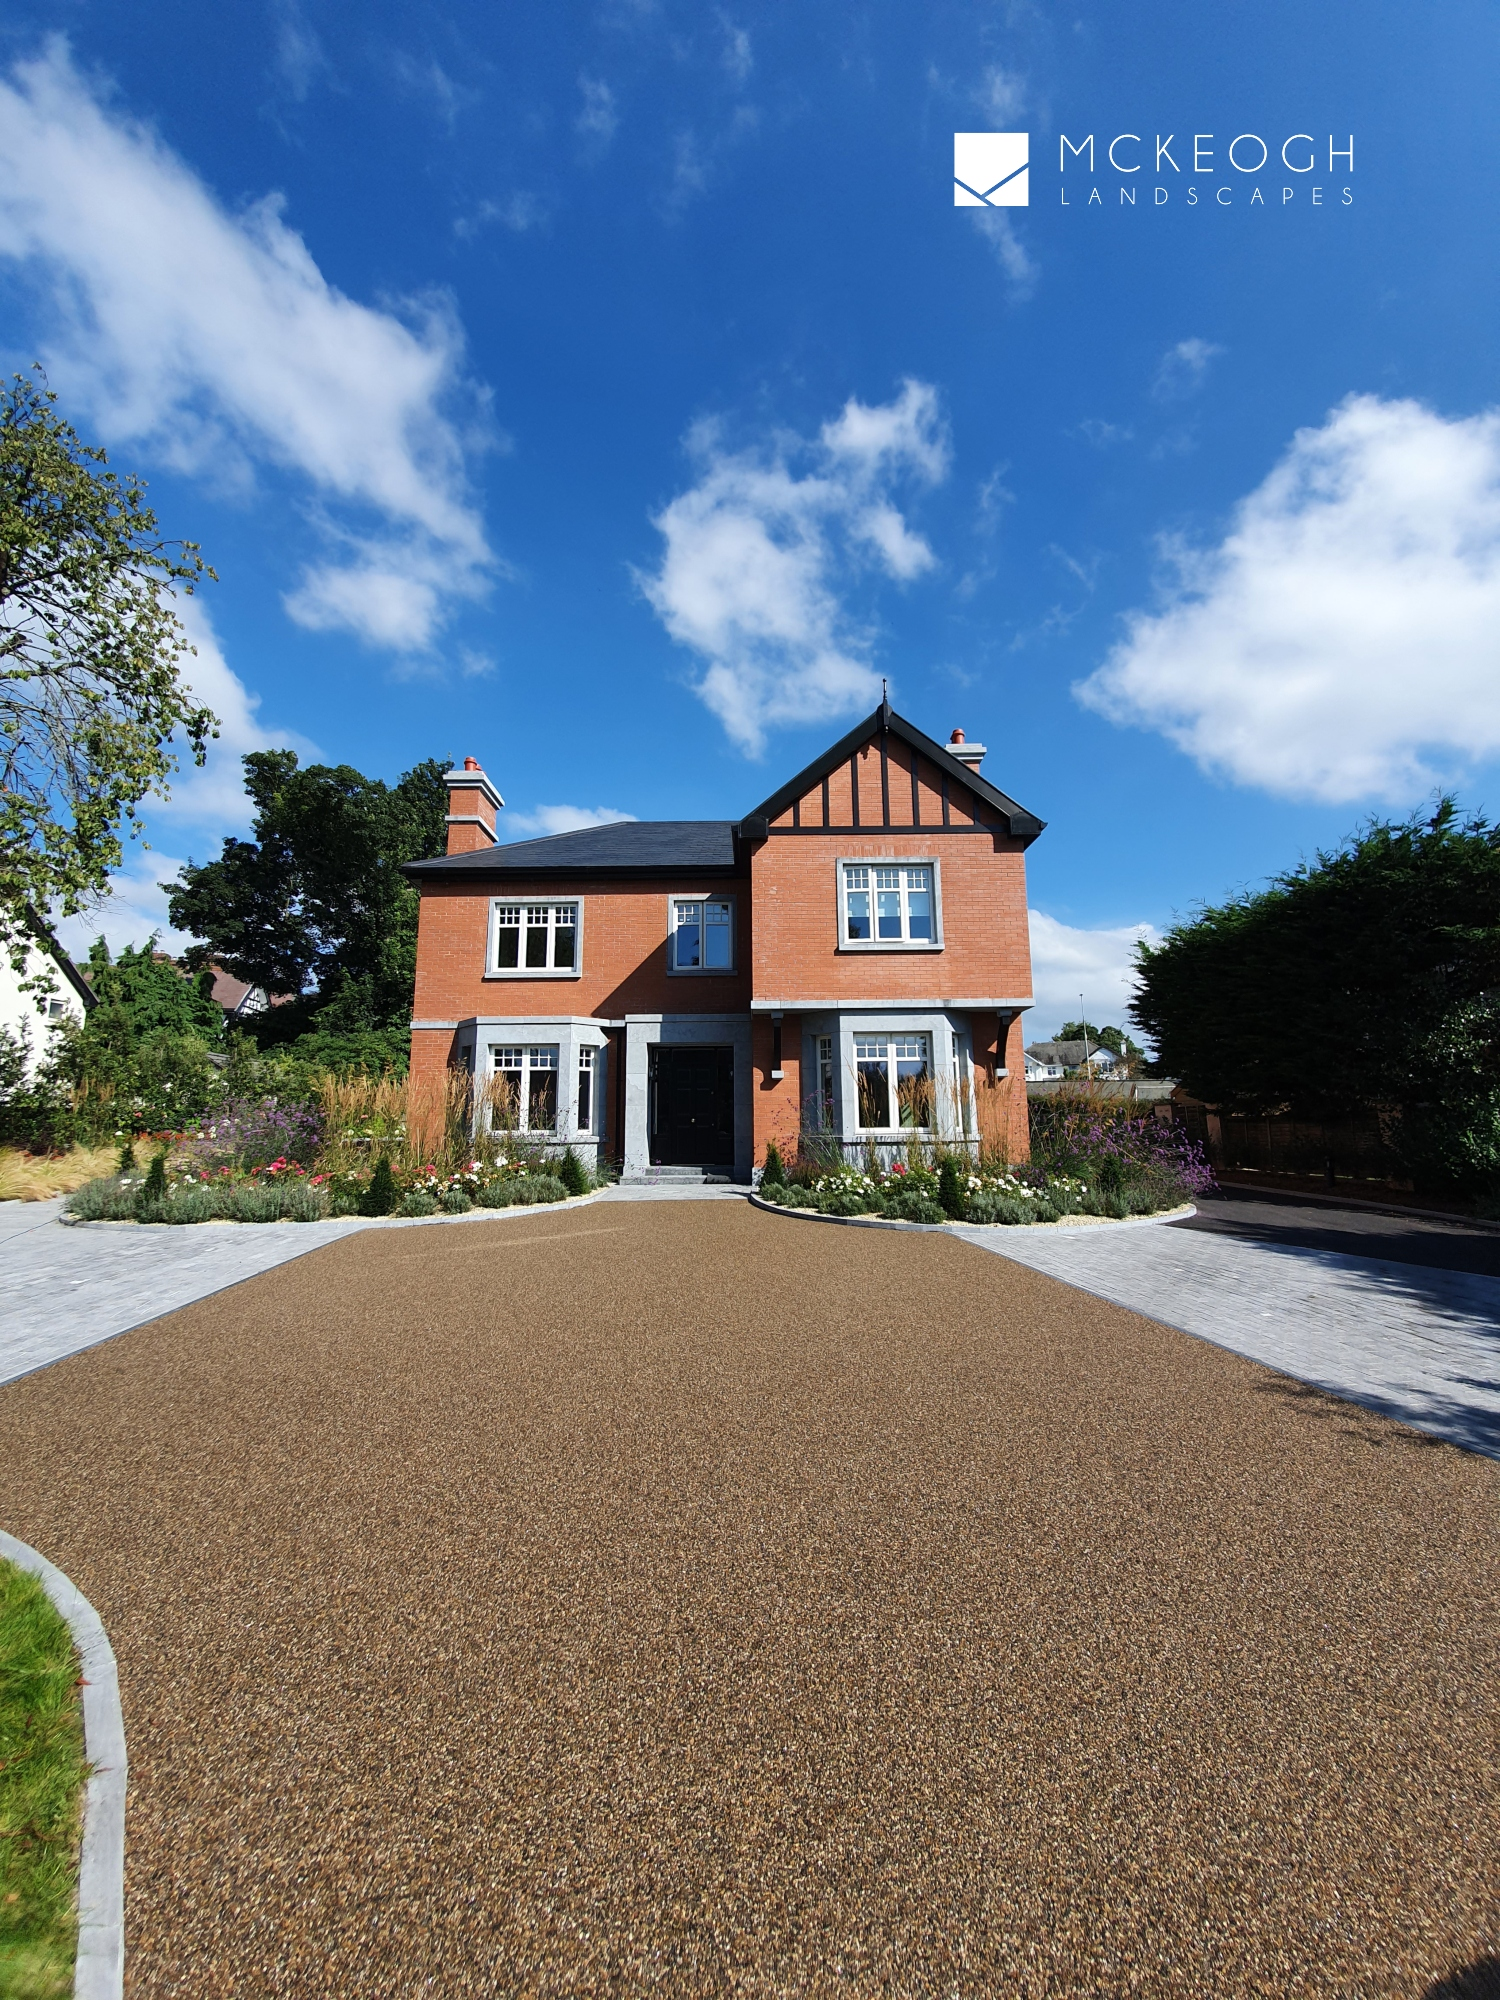 Resin bound driveway at this Limerick city home